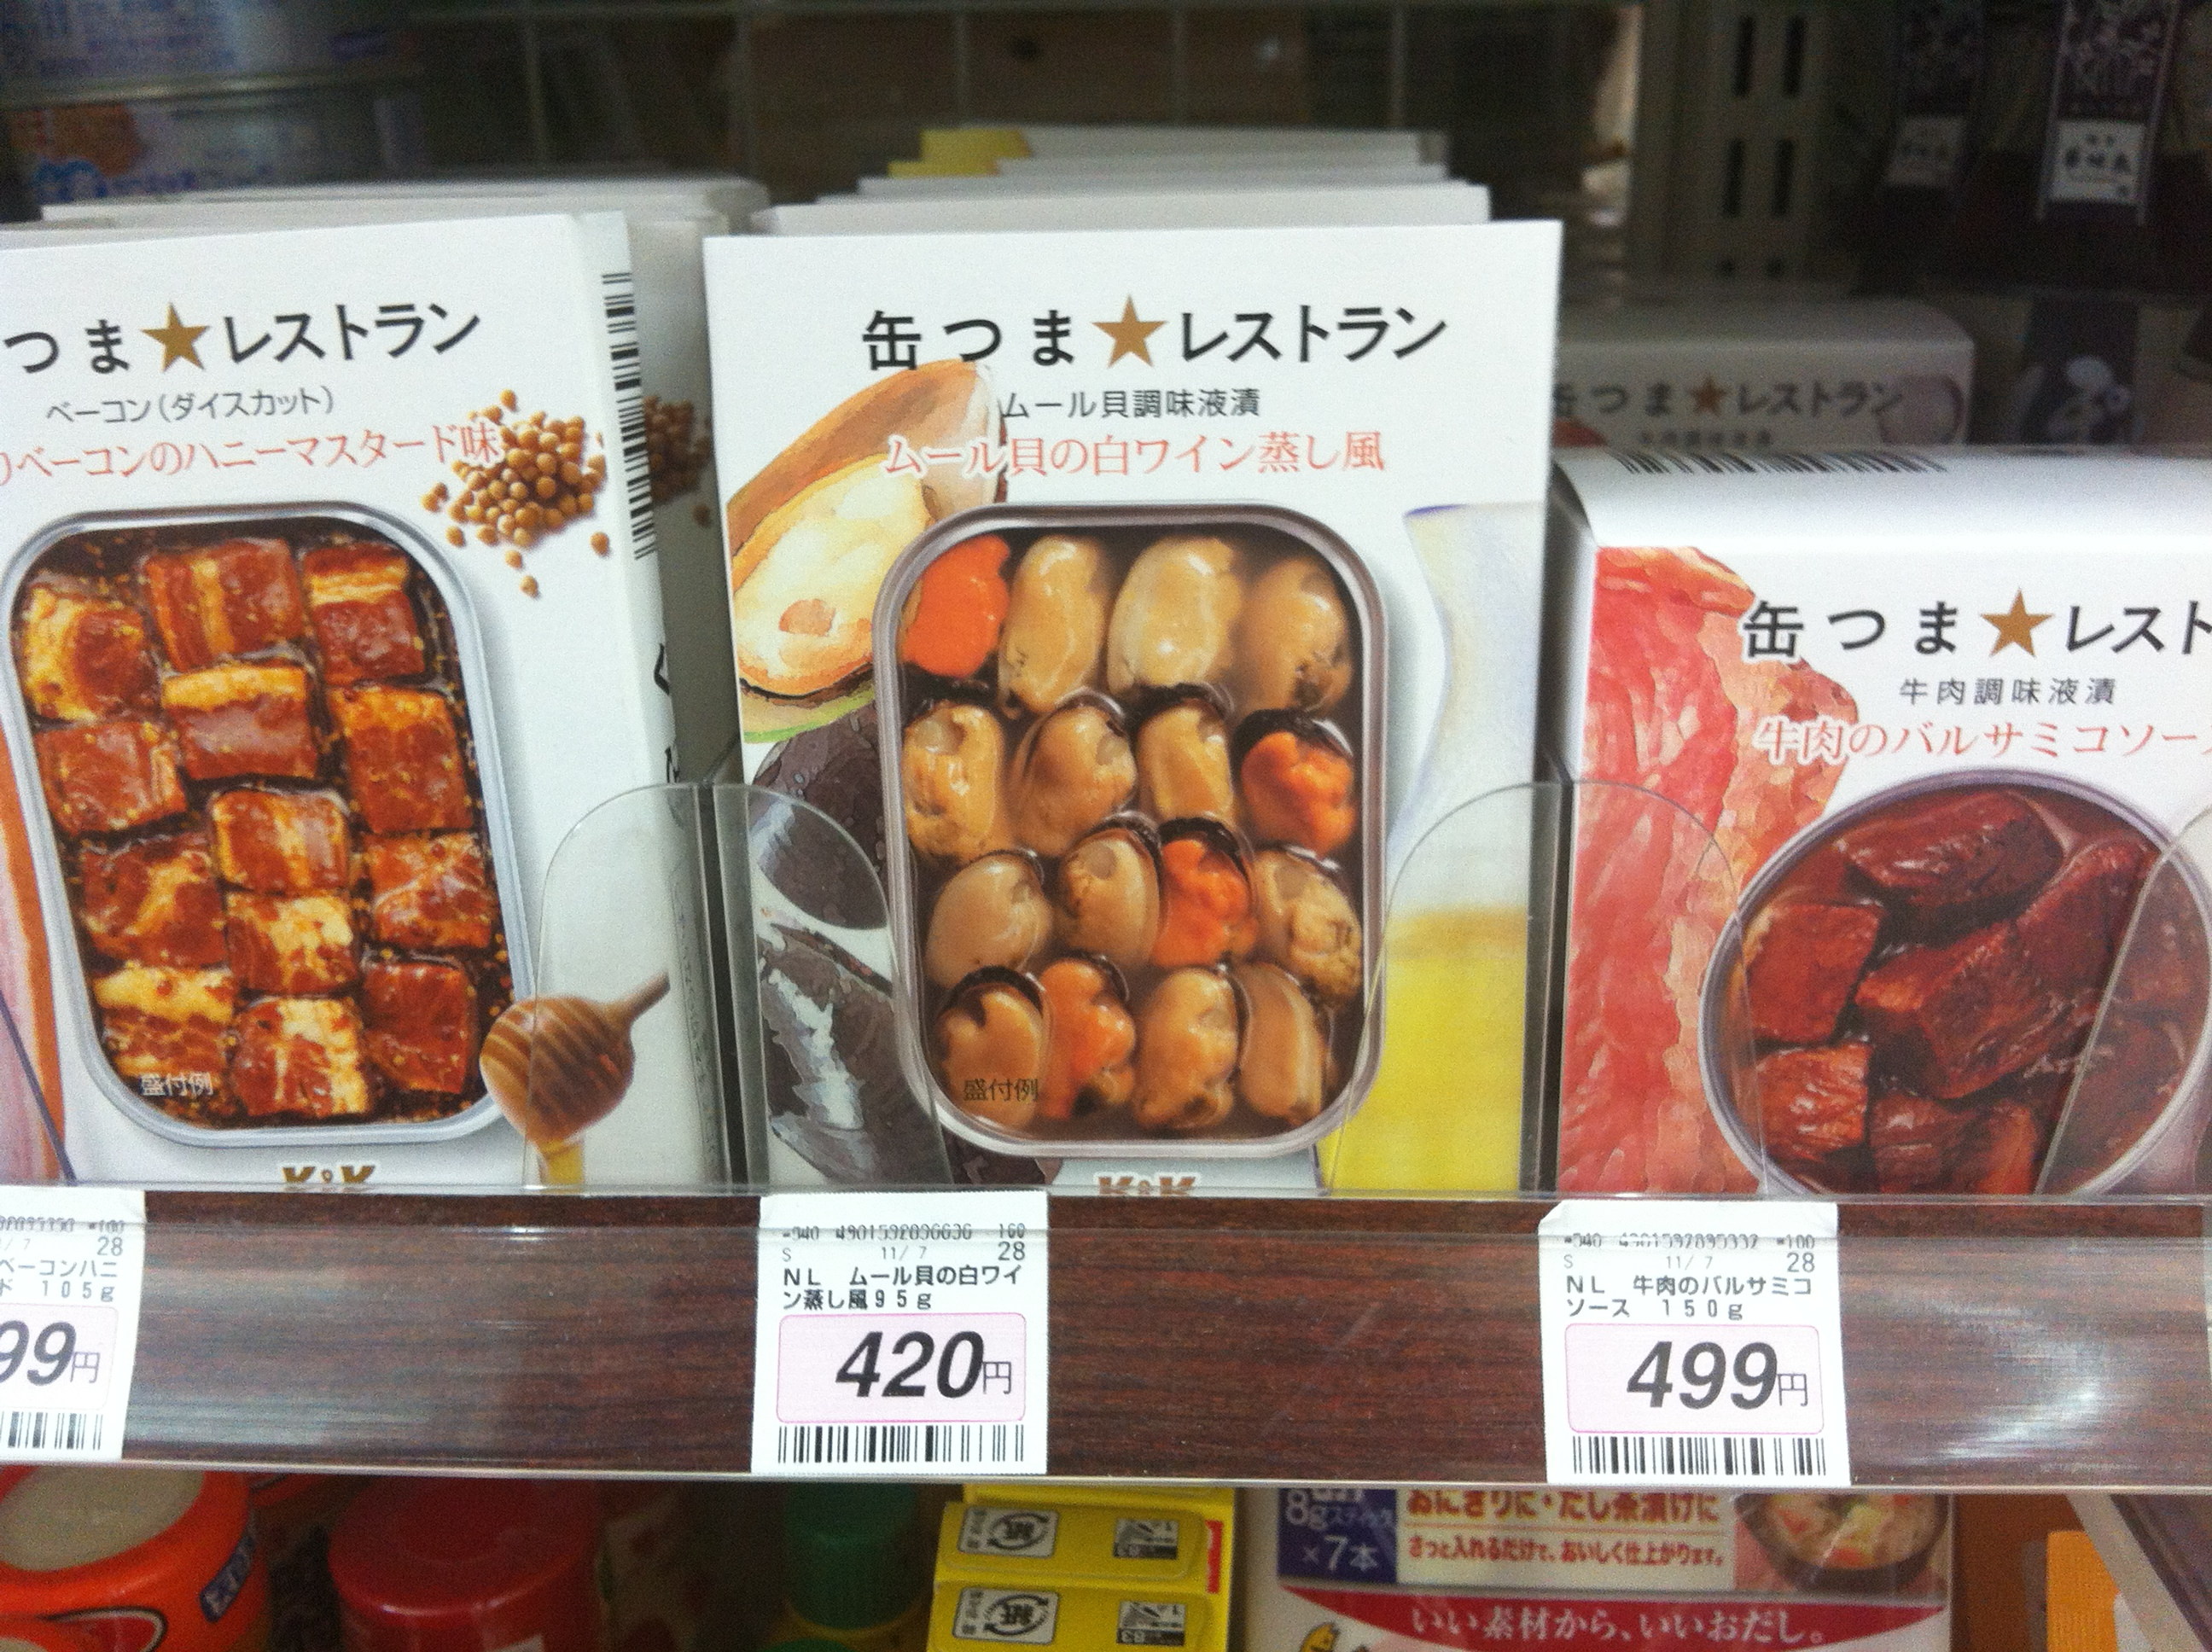 Gastronomic canned products. Wine-flavored mussels and beef with balsamic vinegar sauce.